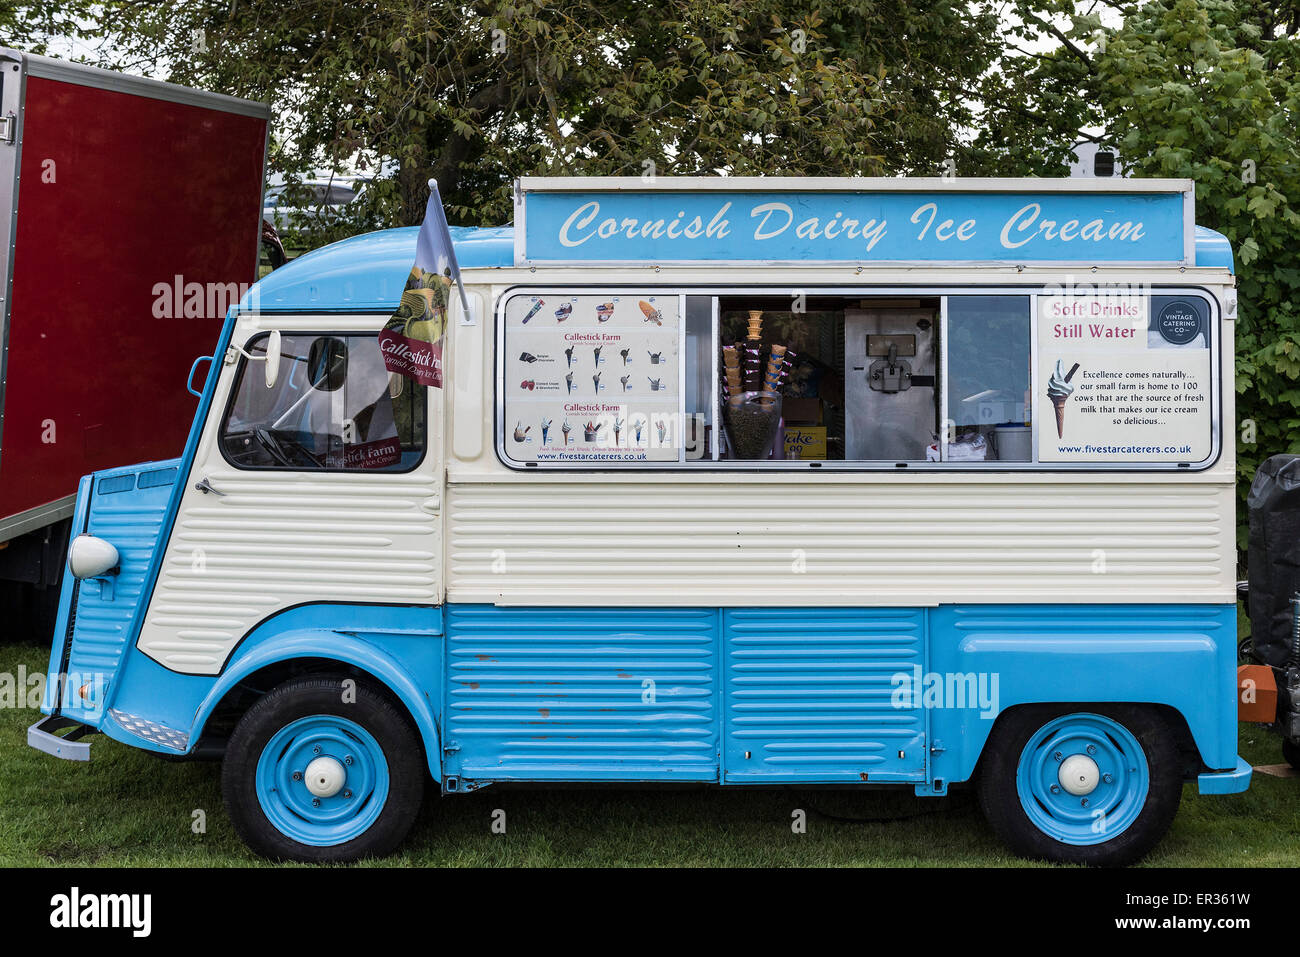 Converted Vans A Citroen Van Converted To An Ice Cream Van Stock Photo Royalty